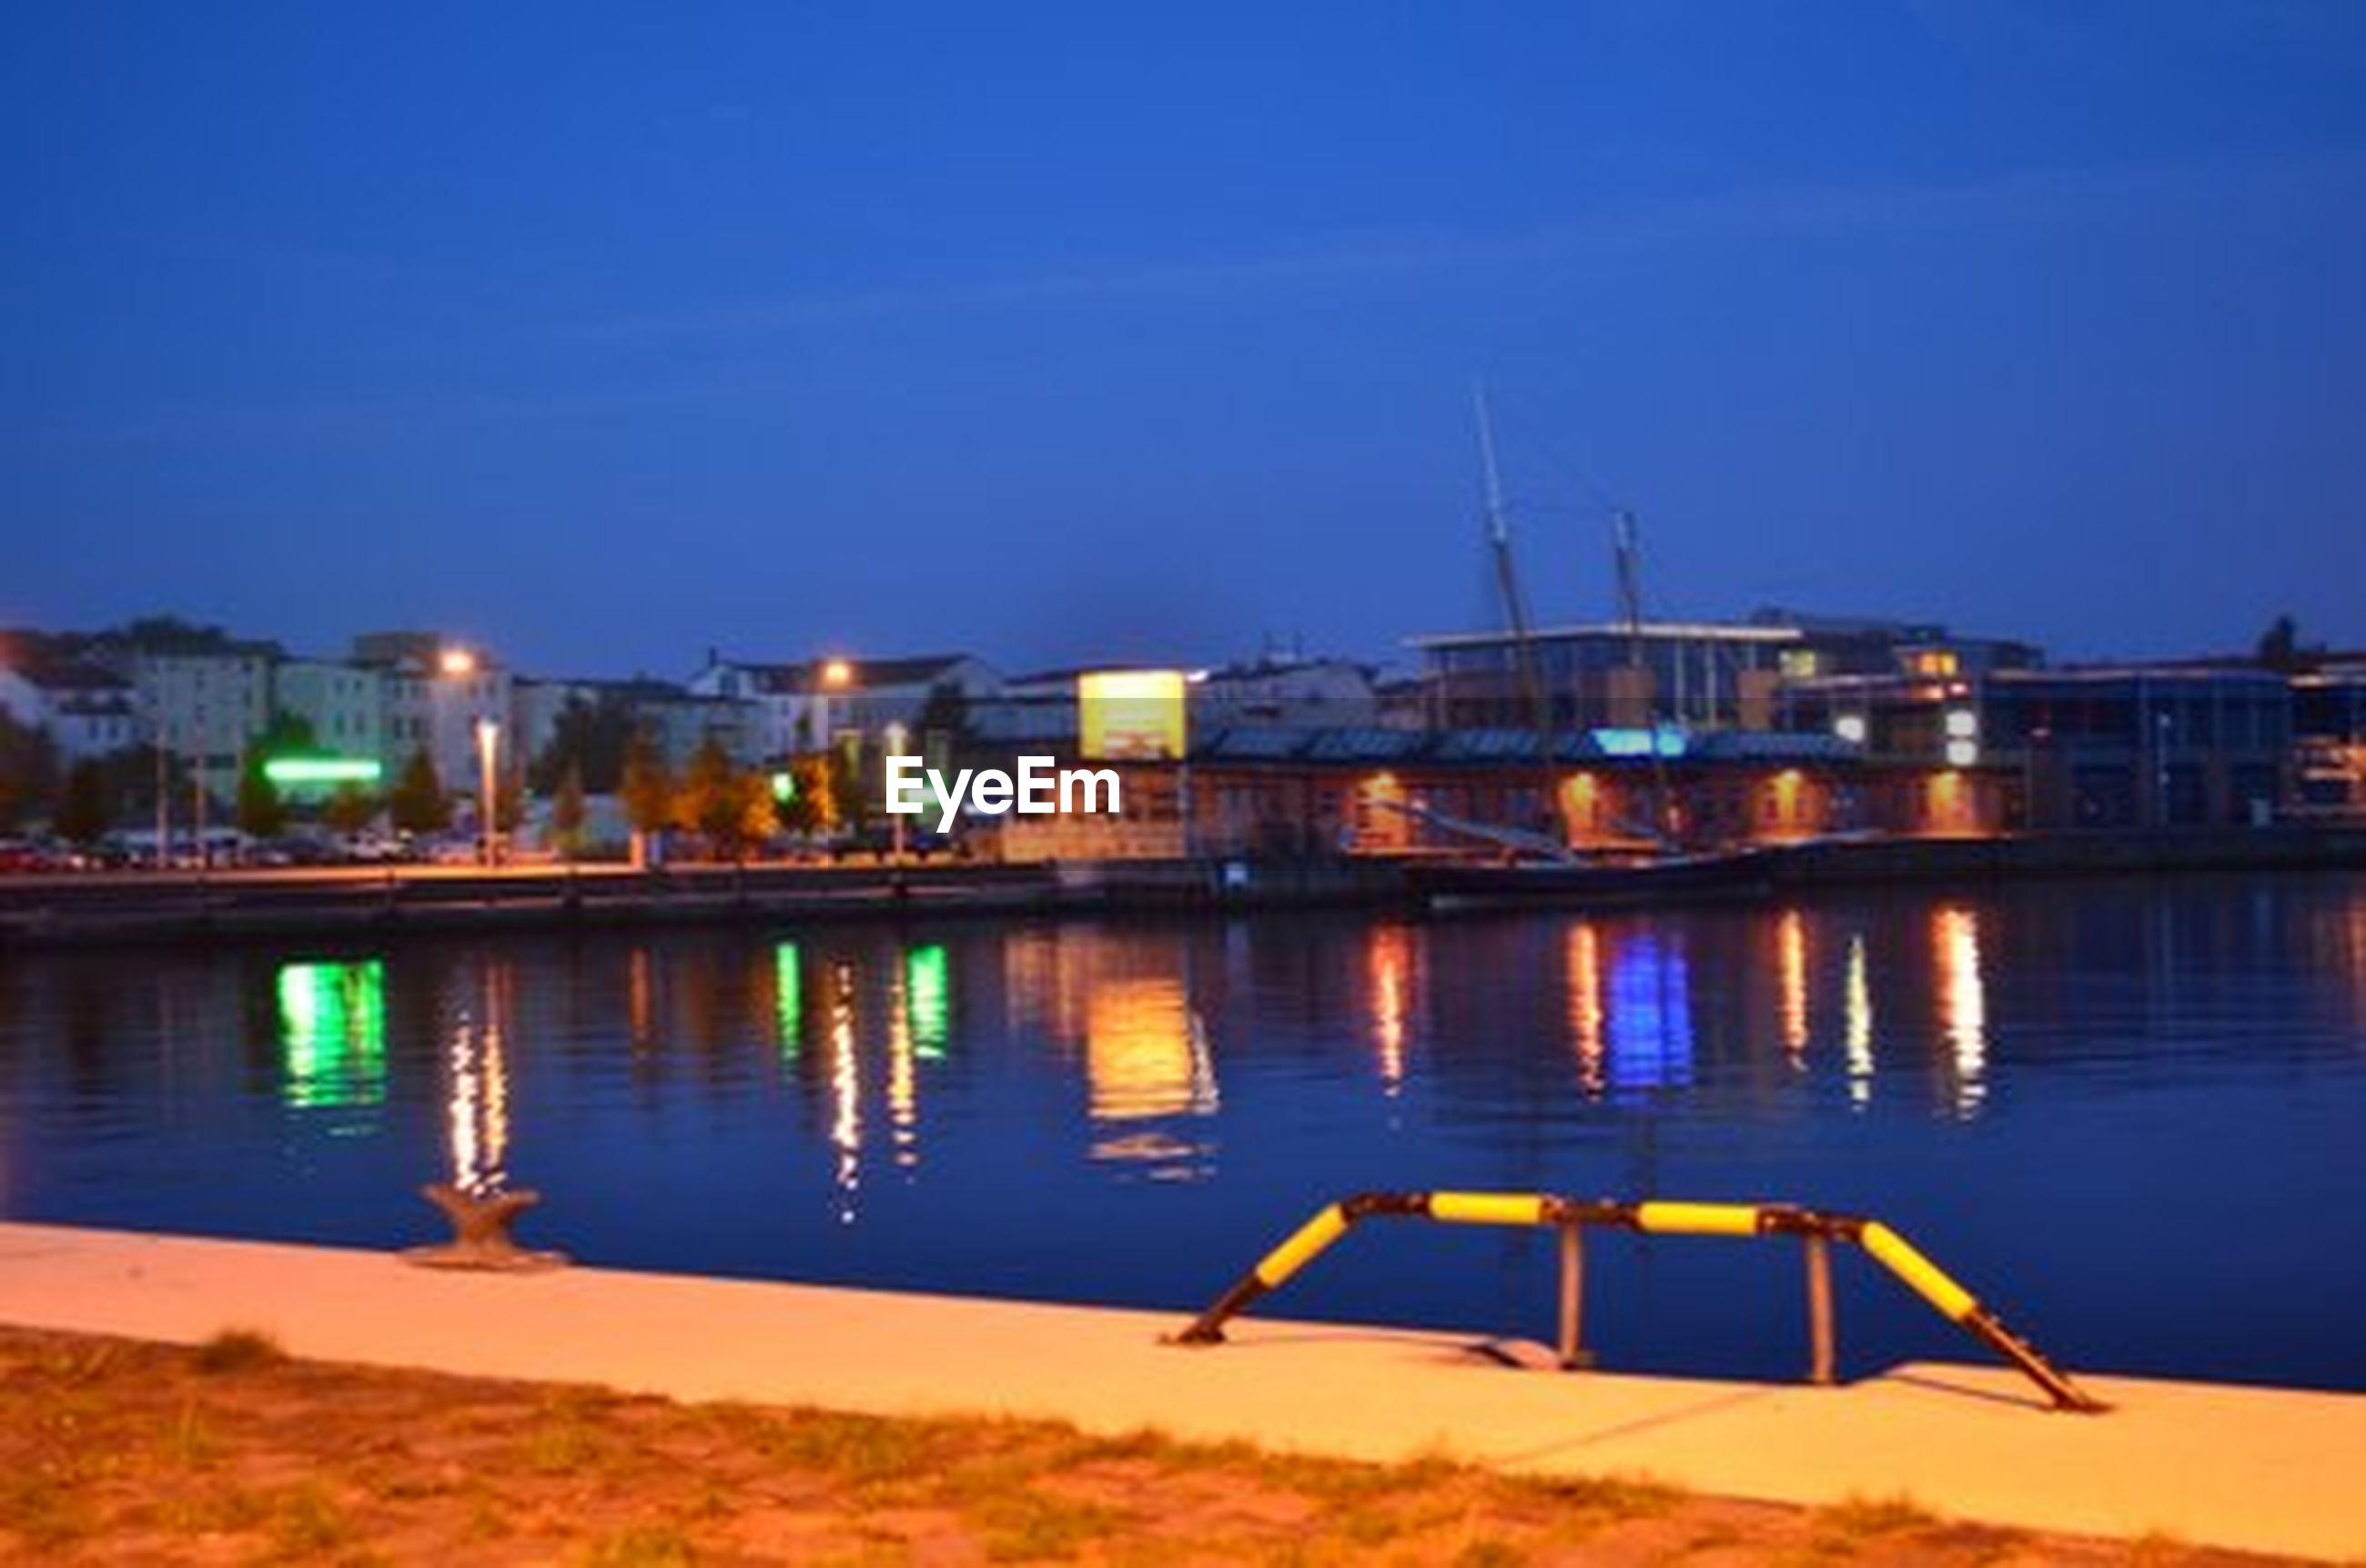 water, illuminated, built structure, architecture, night, building exterior, clear sky, reflection, river, blue, city, copy space, waterfront, outdoors, transportation, lake, no people, pier, sky, dusk